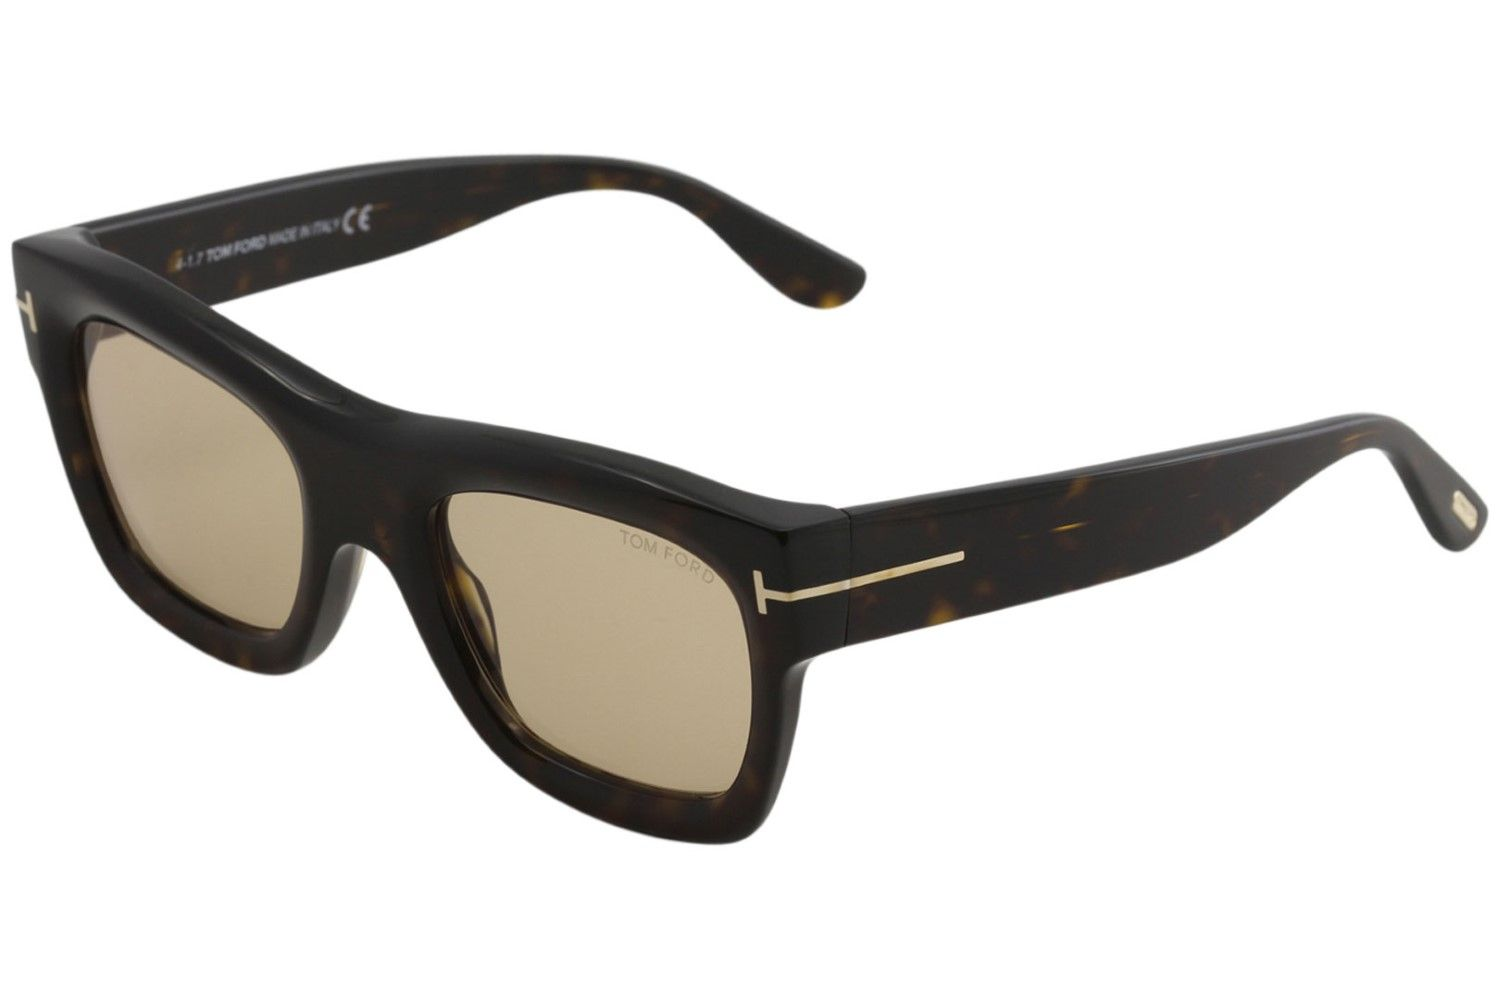 Ray Ban 'Classic Wayfarer' 55mm Sunglasses #eBay #Groom